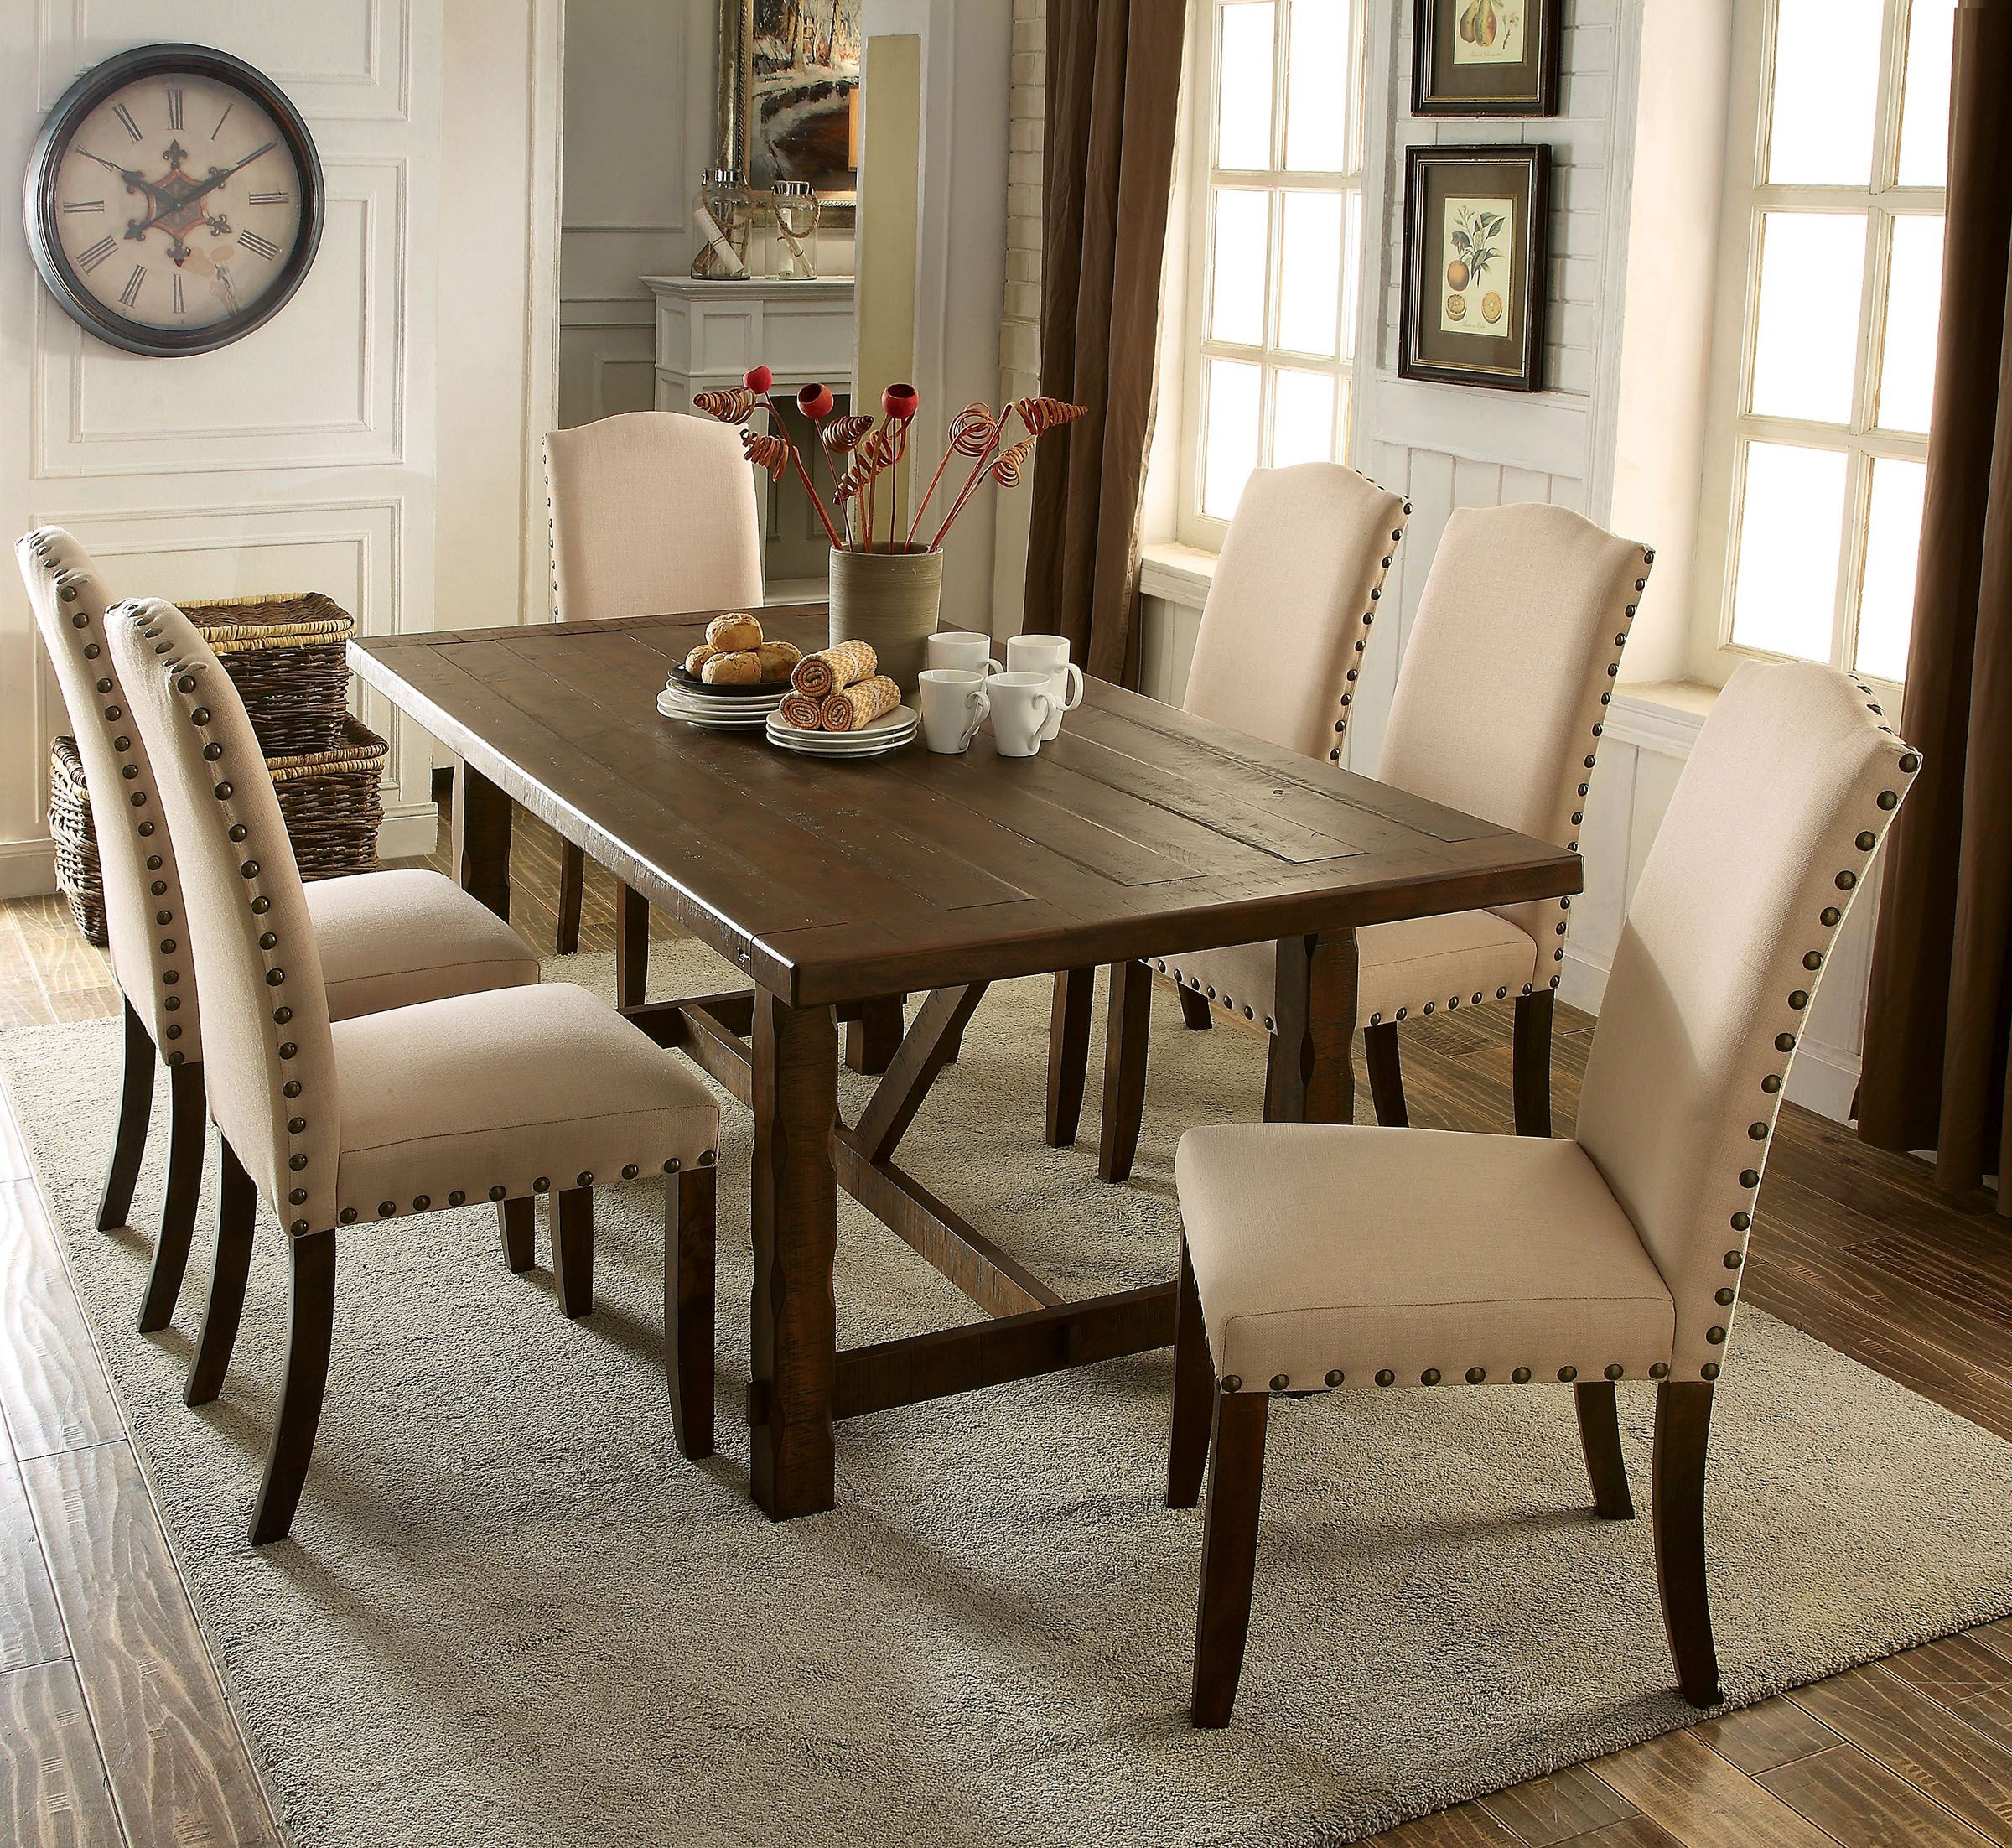 Rustic Dining Room Table Set: Brentford Rustic Walnut Rectangular Dining Room Set From